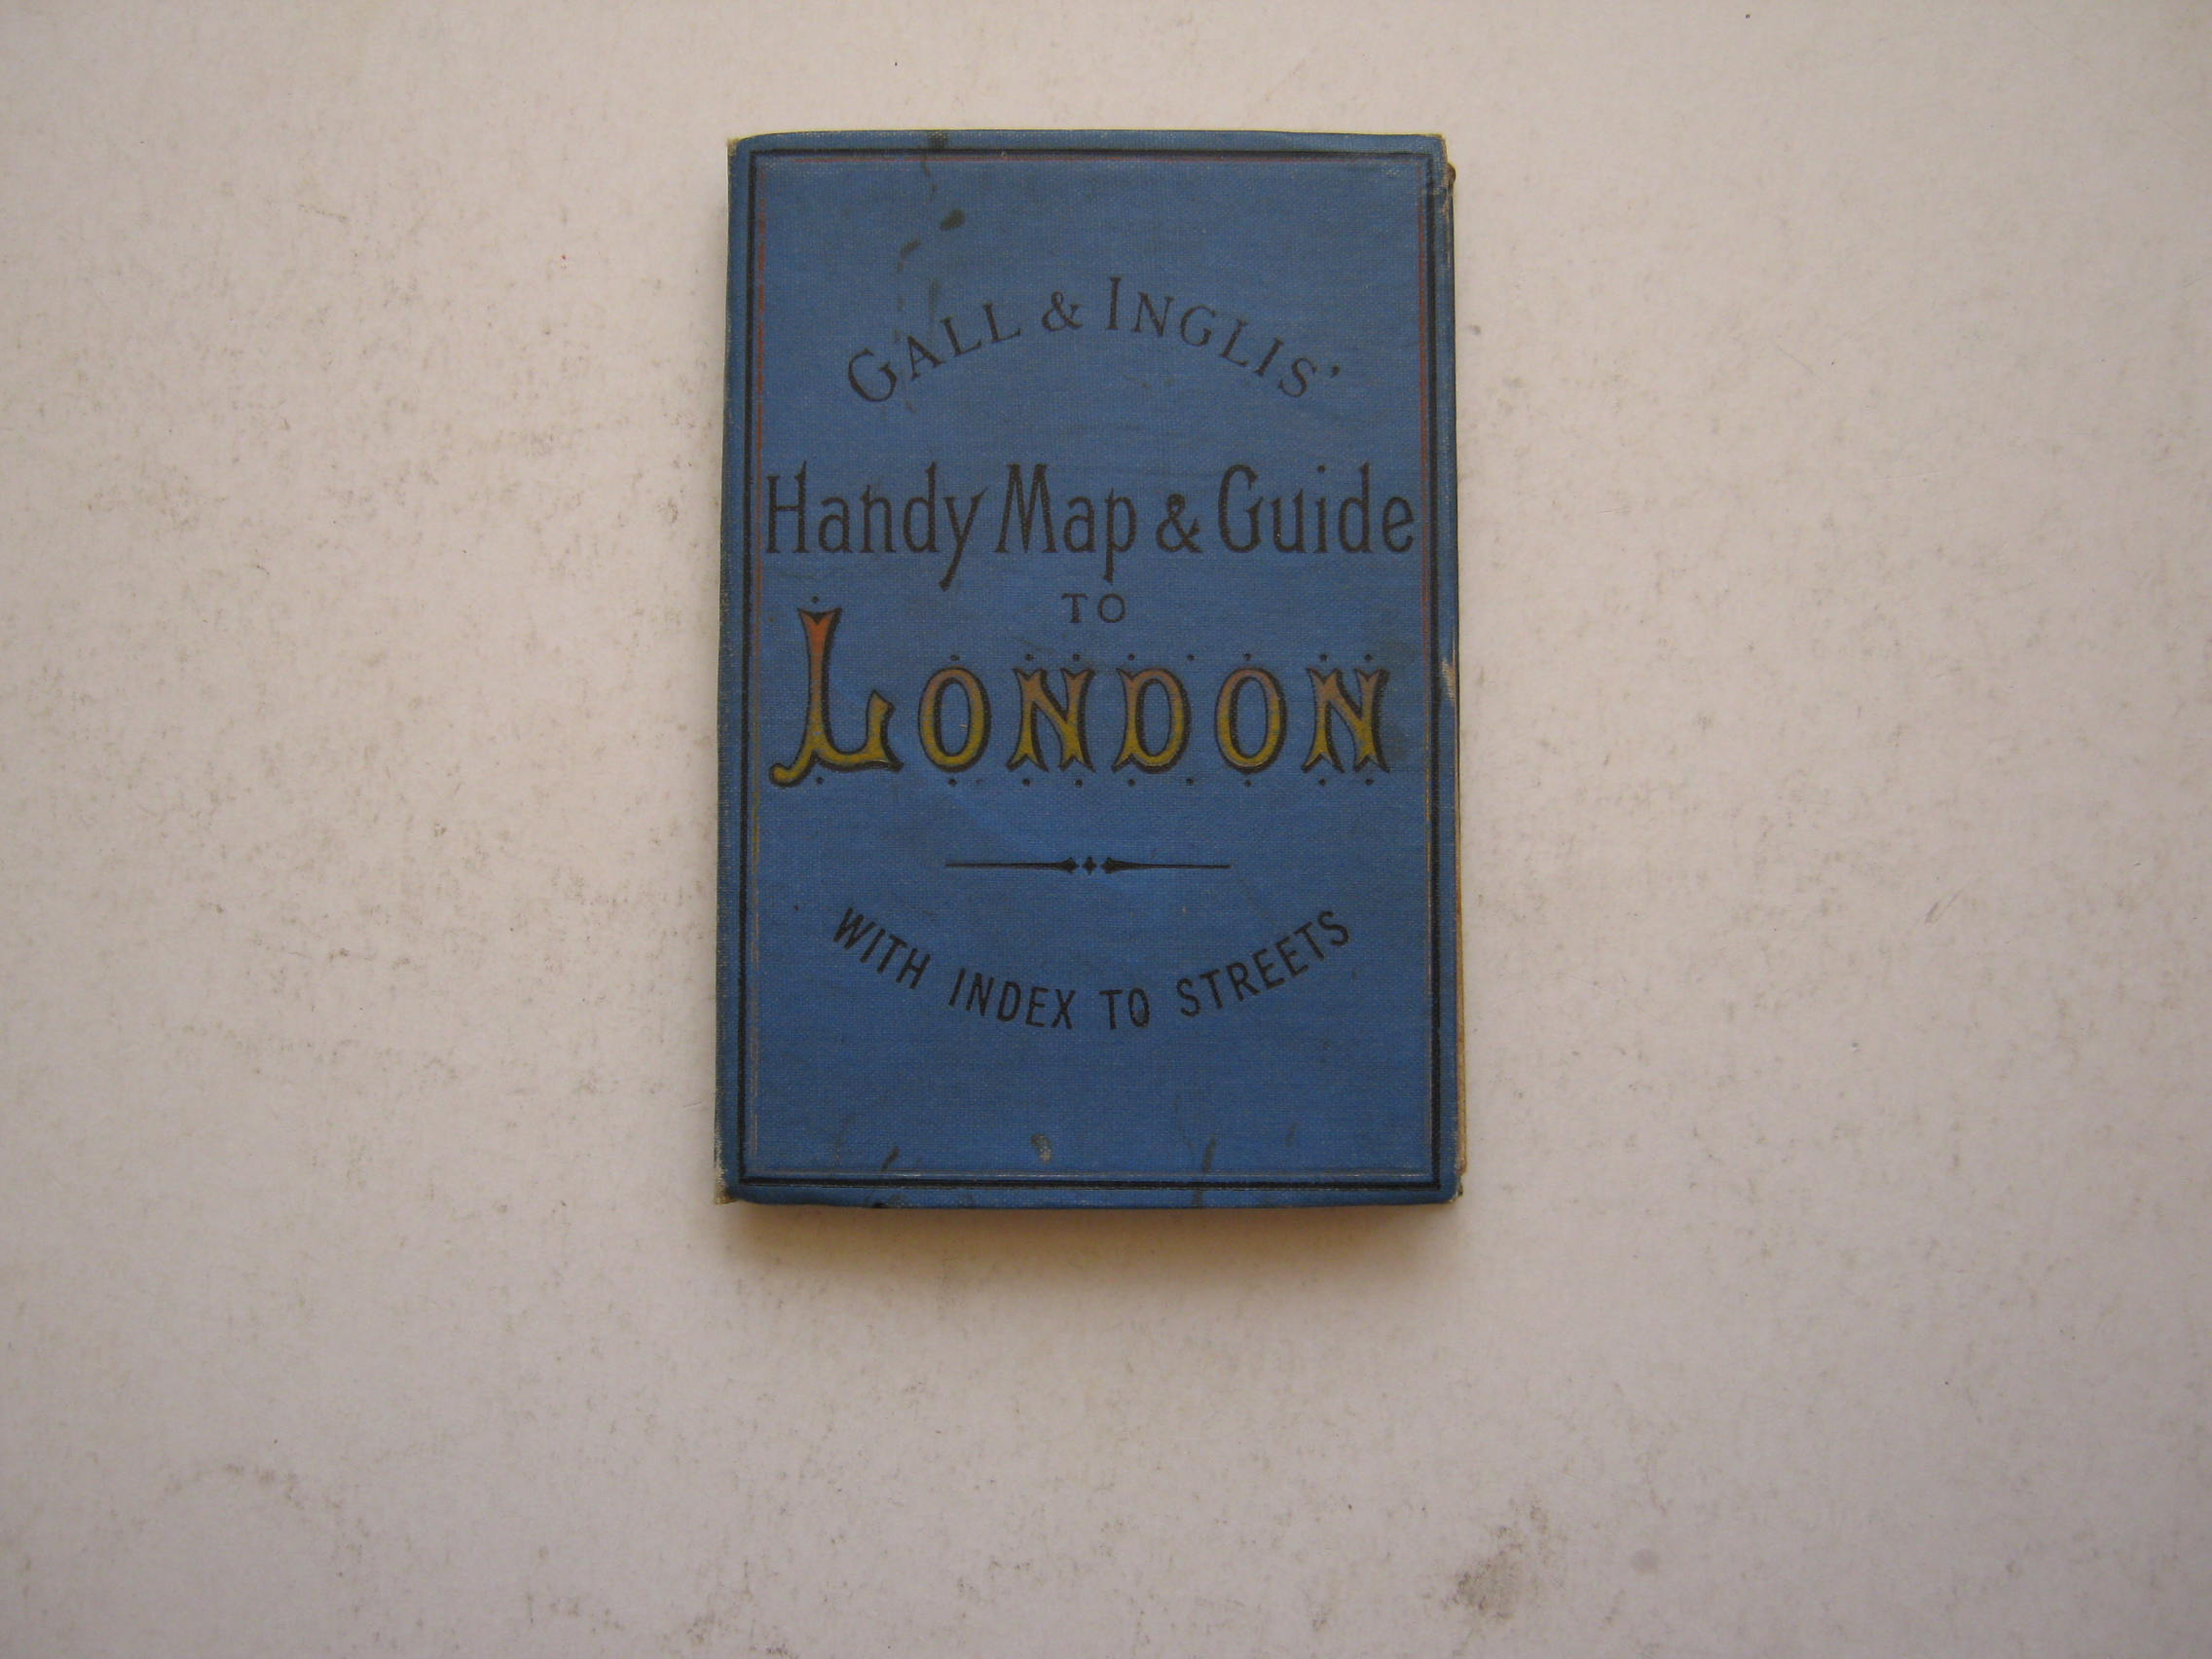 Cruchley's Handy Map of London, :With Index to Streets, 3 3/4 Inches to One Mile, Anon ;